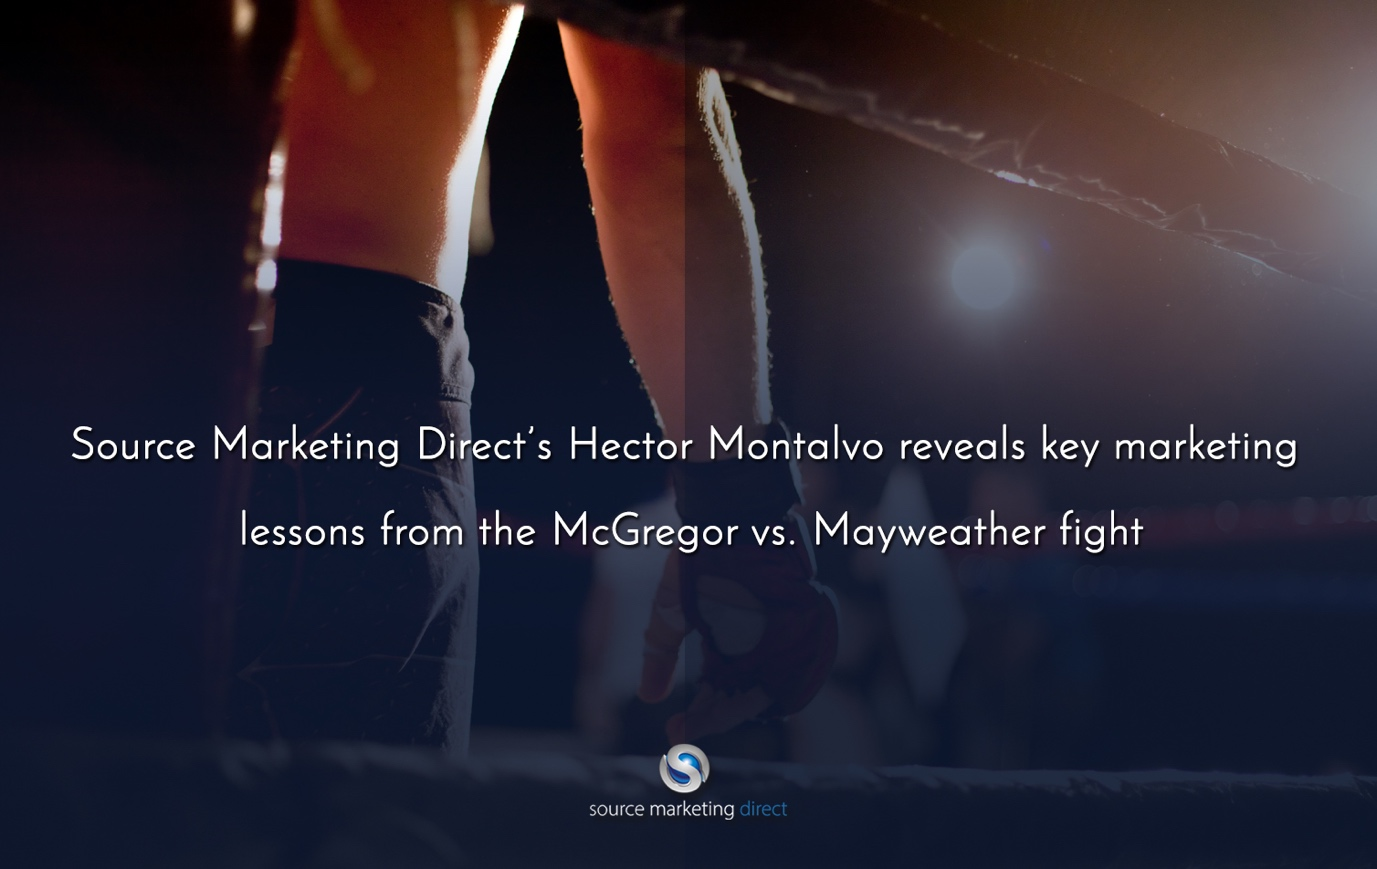 Source Marketing Direct's Hector Montalvo reveals key marketing lessons from the McGregor vs. Mayweather fight